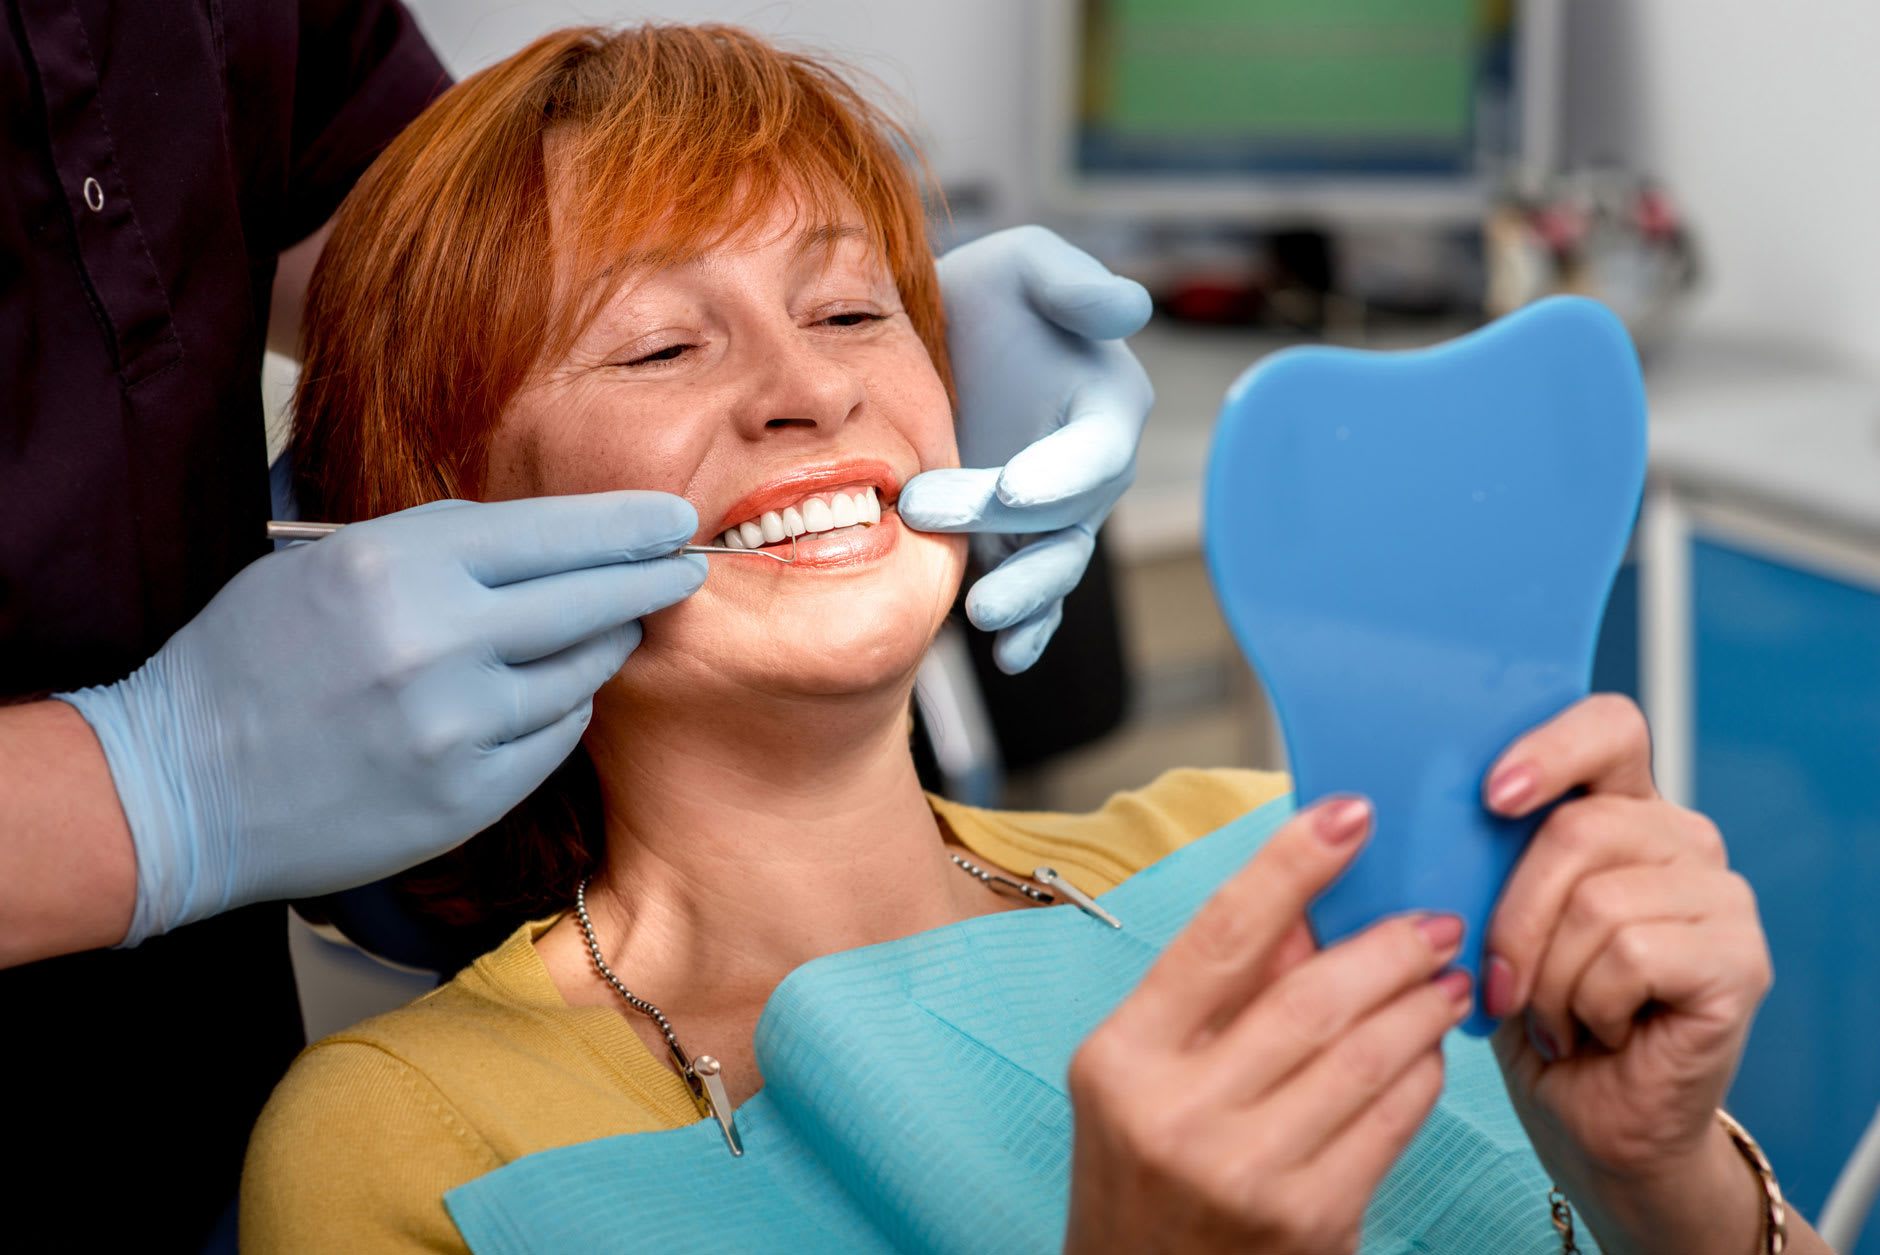 A woman in her 40s is in the dentist's chair smiling, because she knows the answer to the question how long do dentures last and how to give them a long, happy life thanks to Fixodent